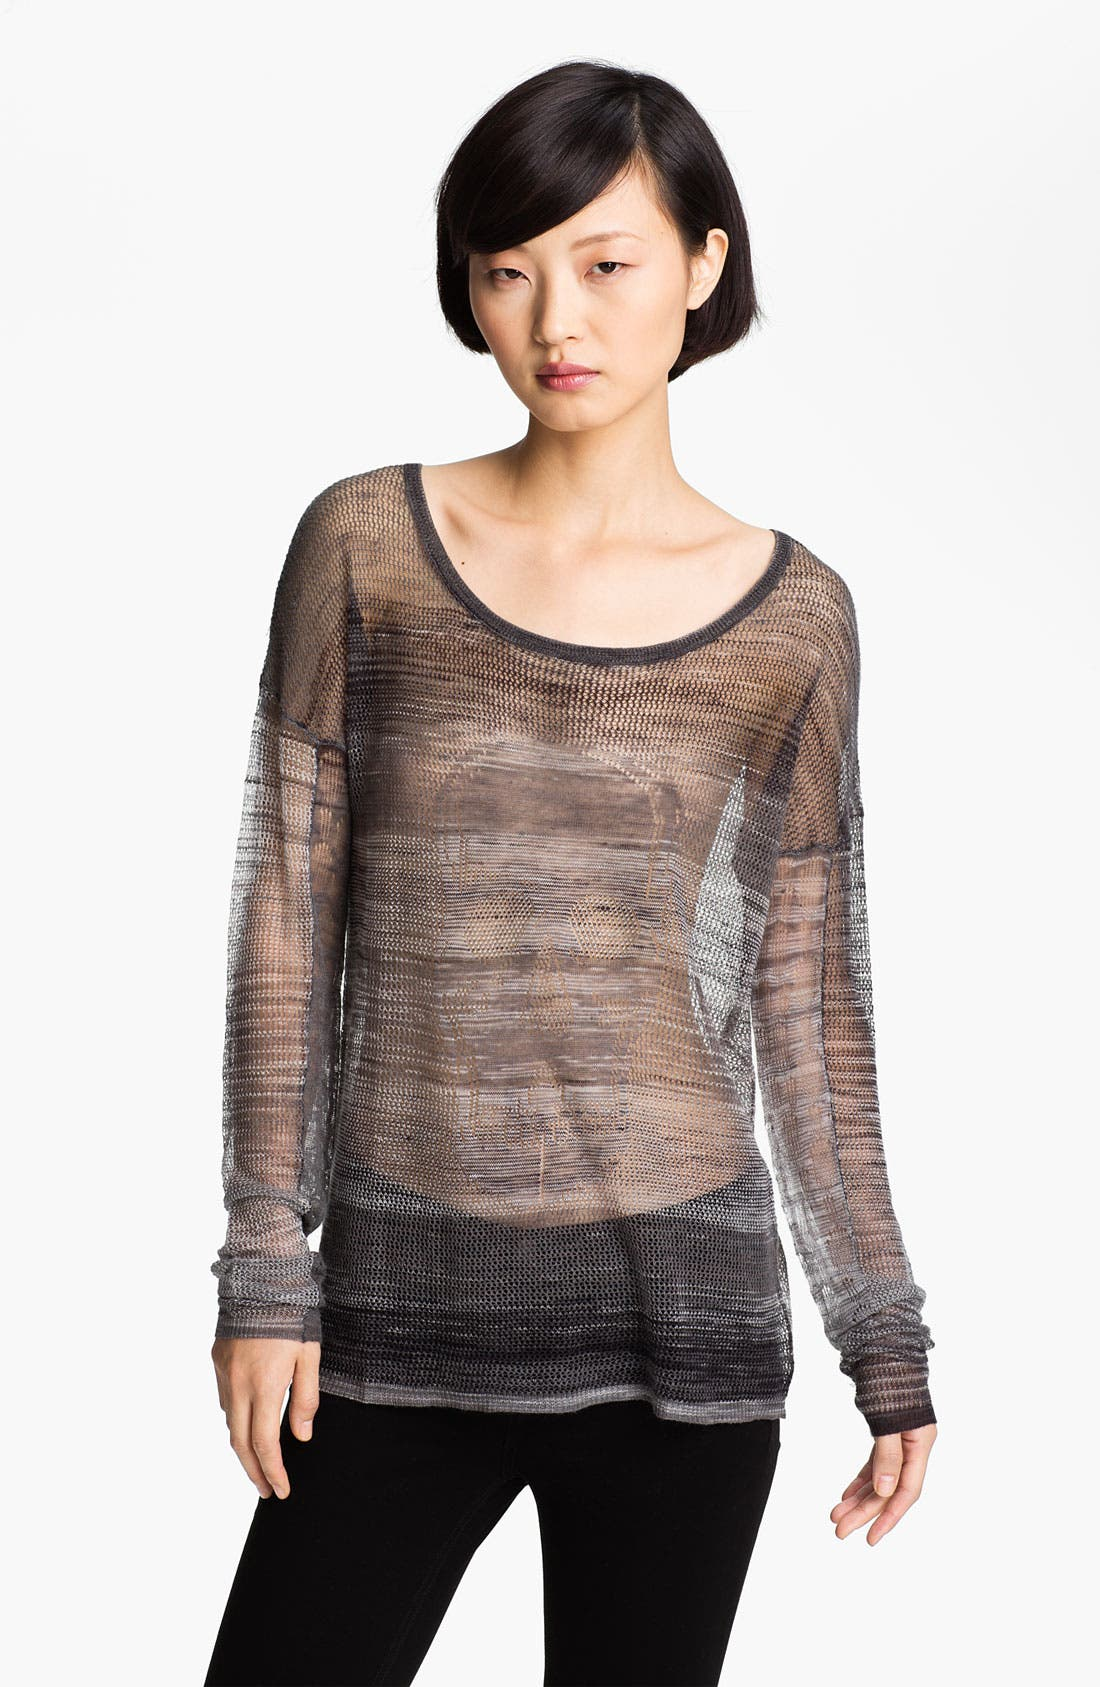 Alternate Image 1 Selected - Zadig & Voltaire 'Box' Sheer Sweater